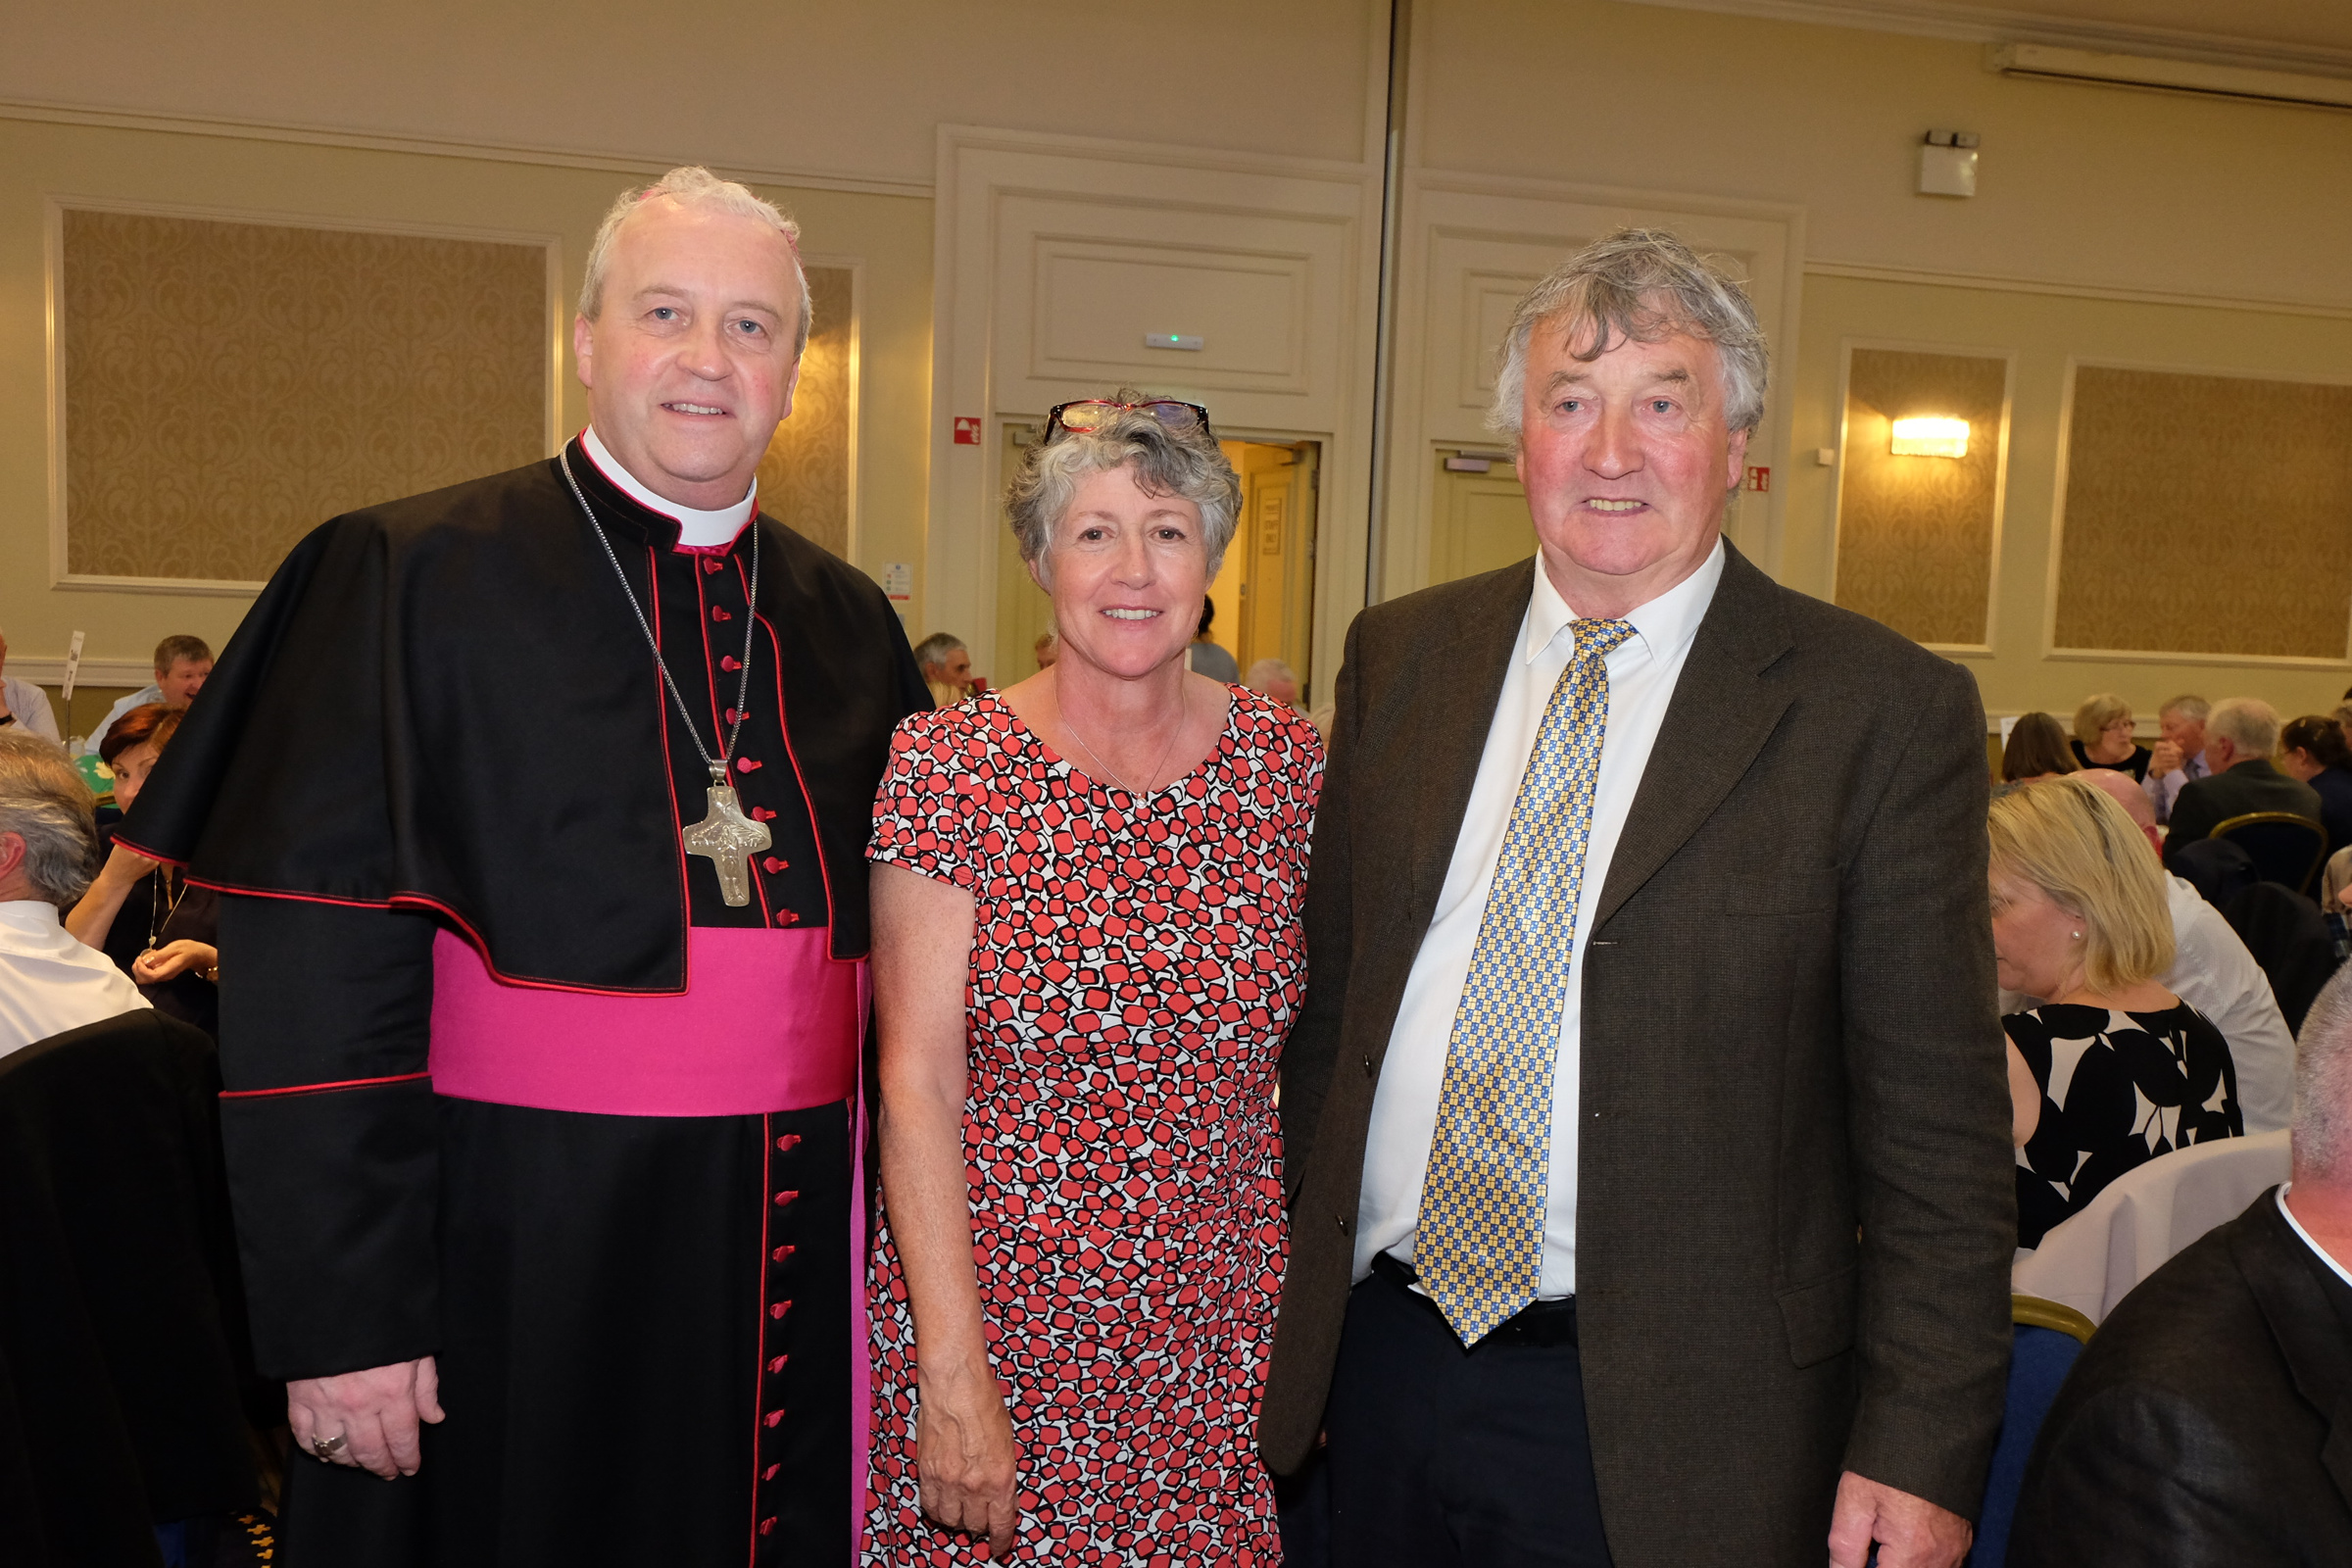 Bridie and Dermot Dolan with the new Bishop Michael Router at a celebration dinner following the Bishop's Ordination